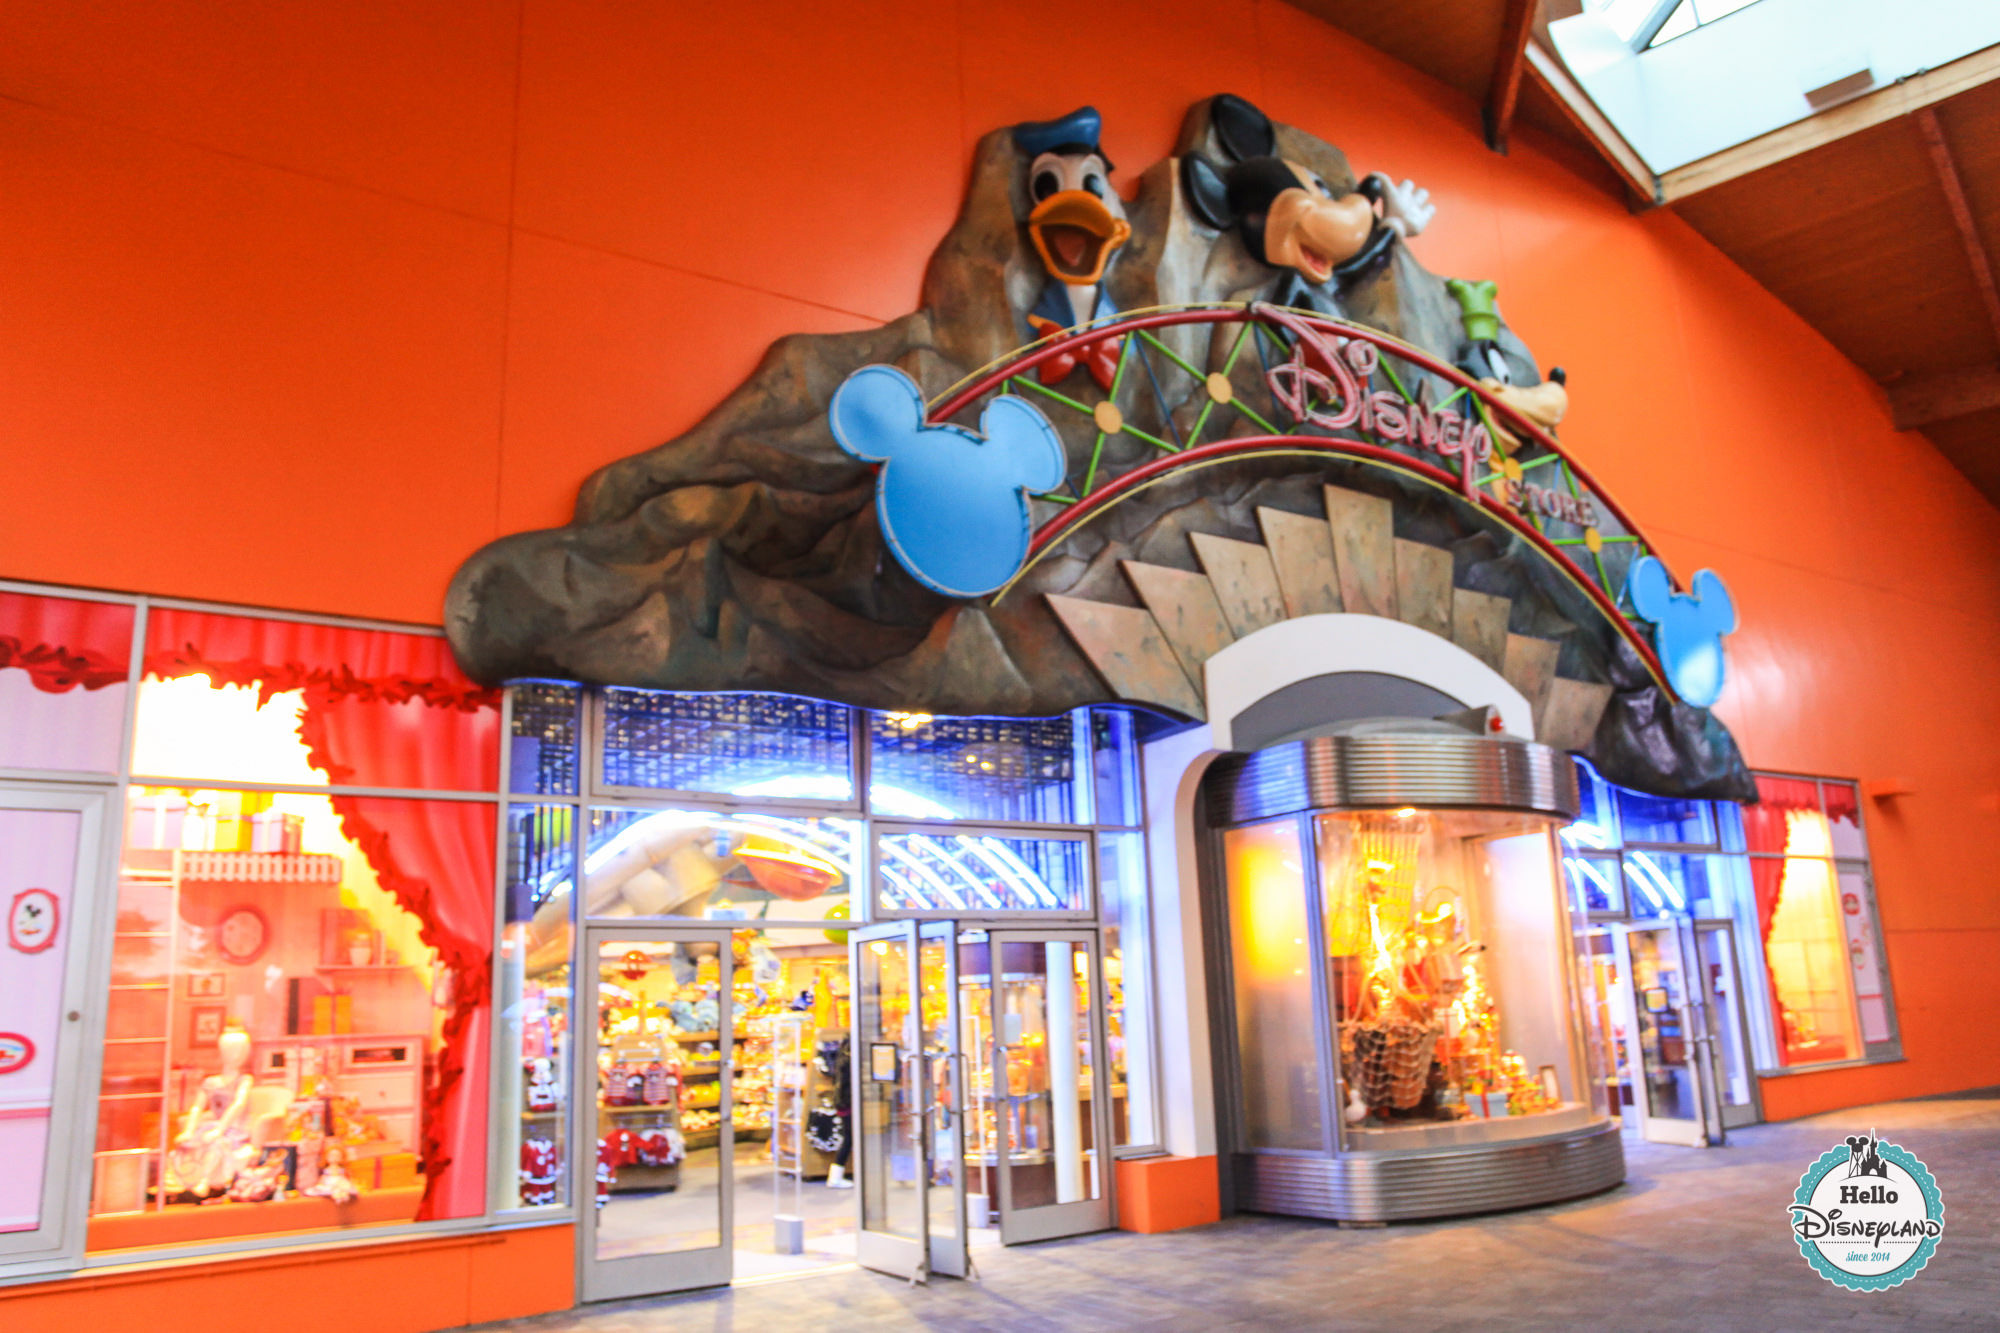 Disneyland store: Target El Camino Real, Redwood City · Directions · ()